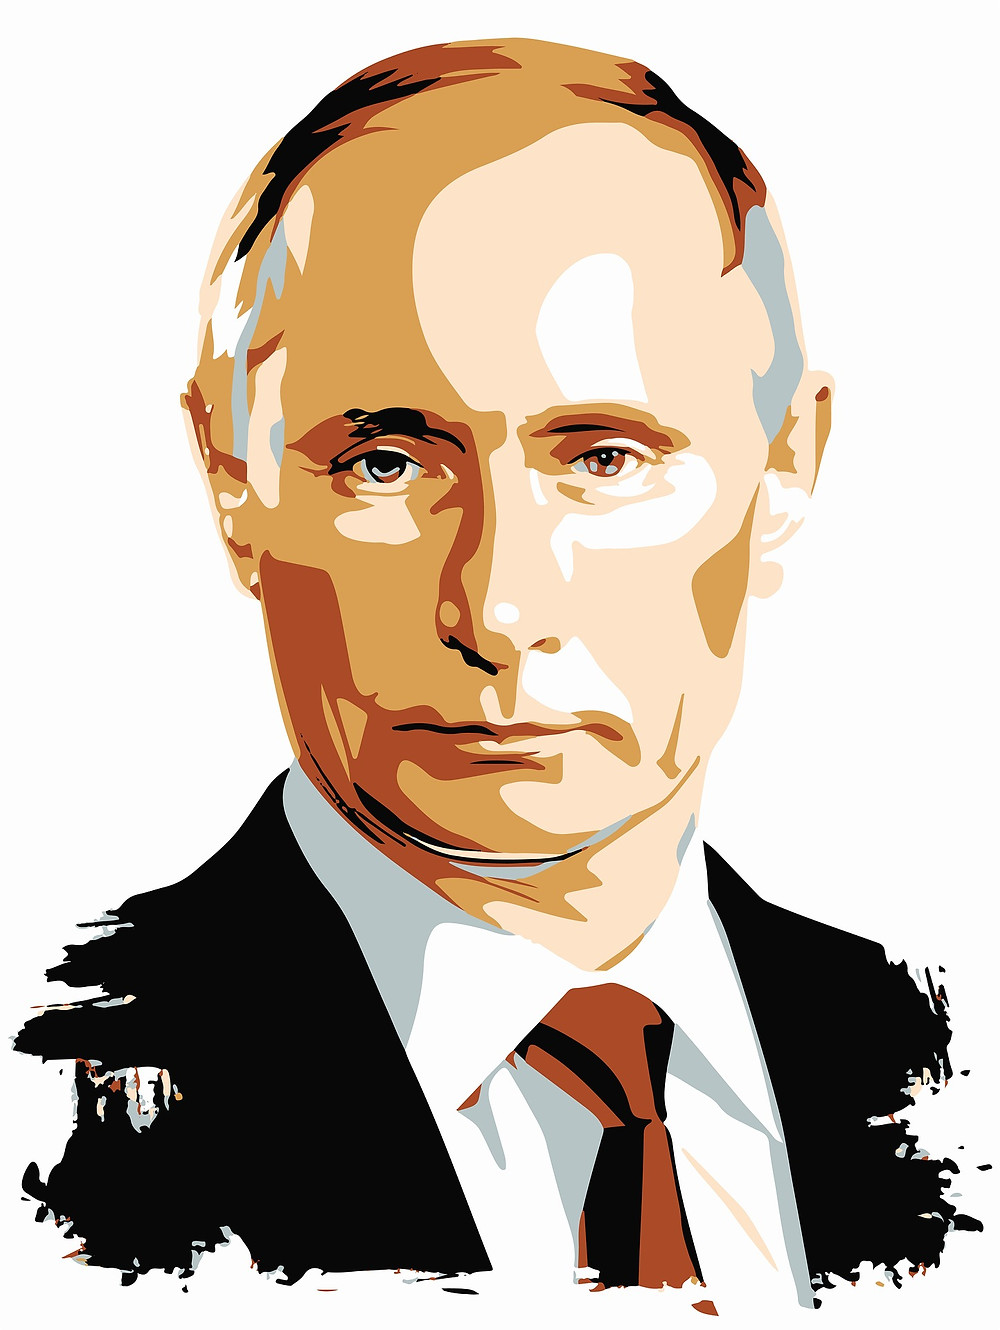 Reports tie Russian President Vladimir Putin to Russia's U.S. election disinformation campaign.